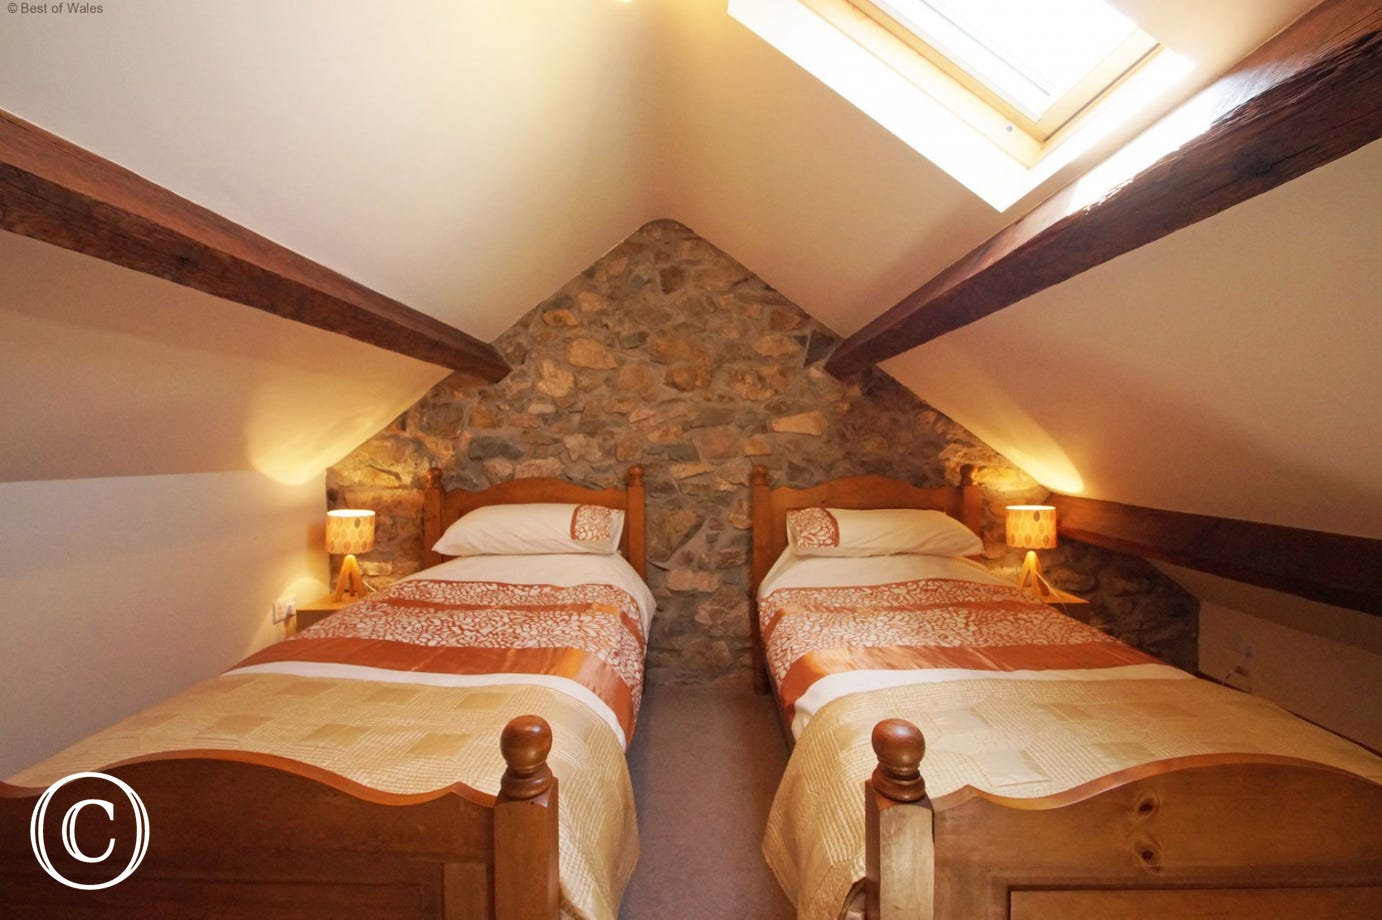 Bedroom 3 - Traditional 'crogloft' with twin beds - accessed via the snug room